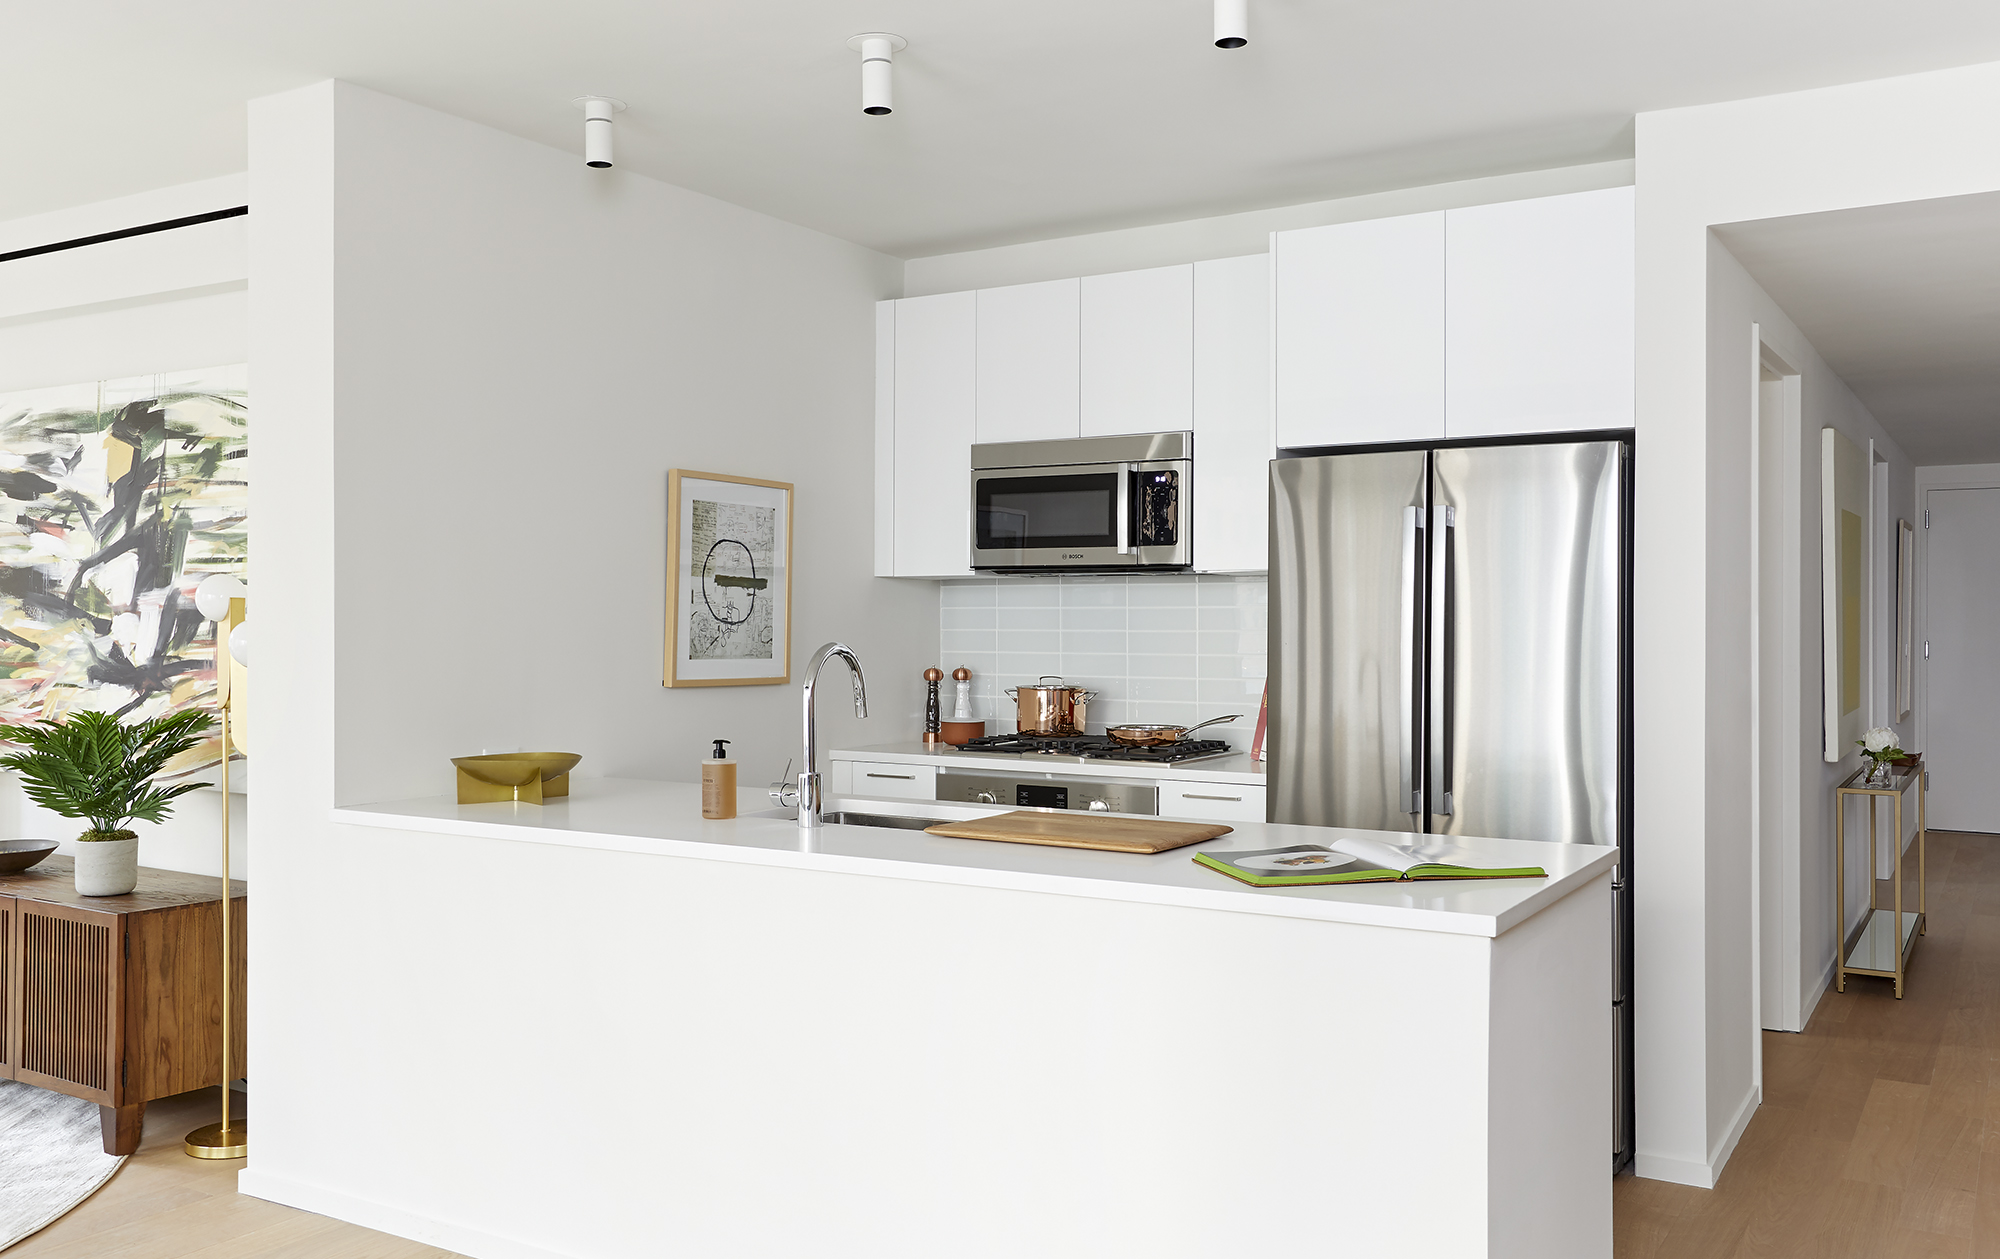 Kitchen featuring white lacquer custom Italian cabinetry